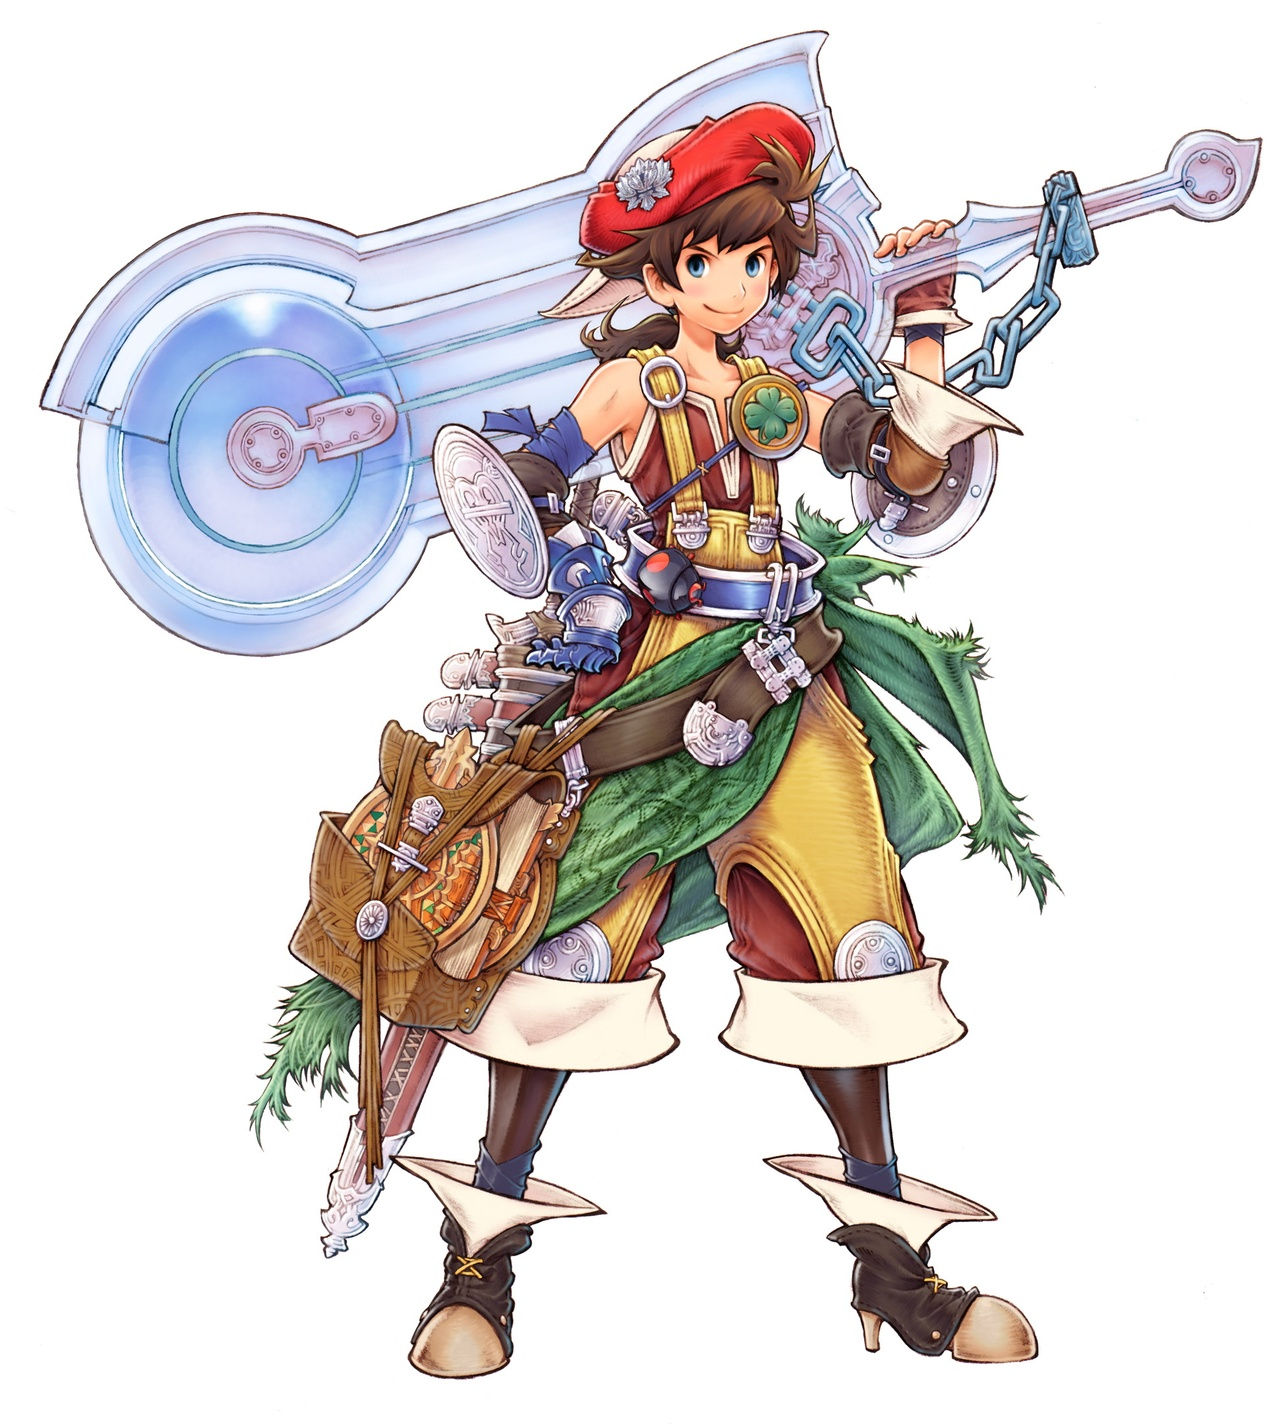 Final Fantasy Tactics A2: Grimoire of the Rift characters